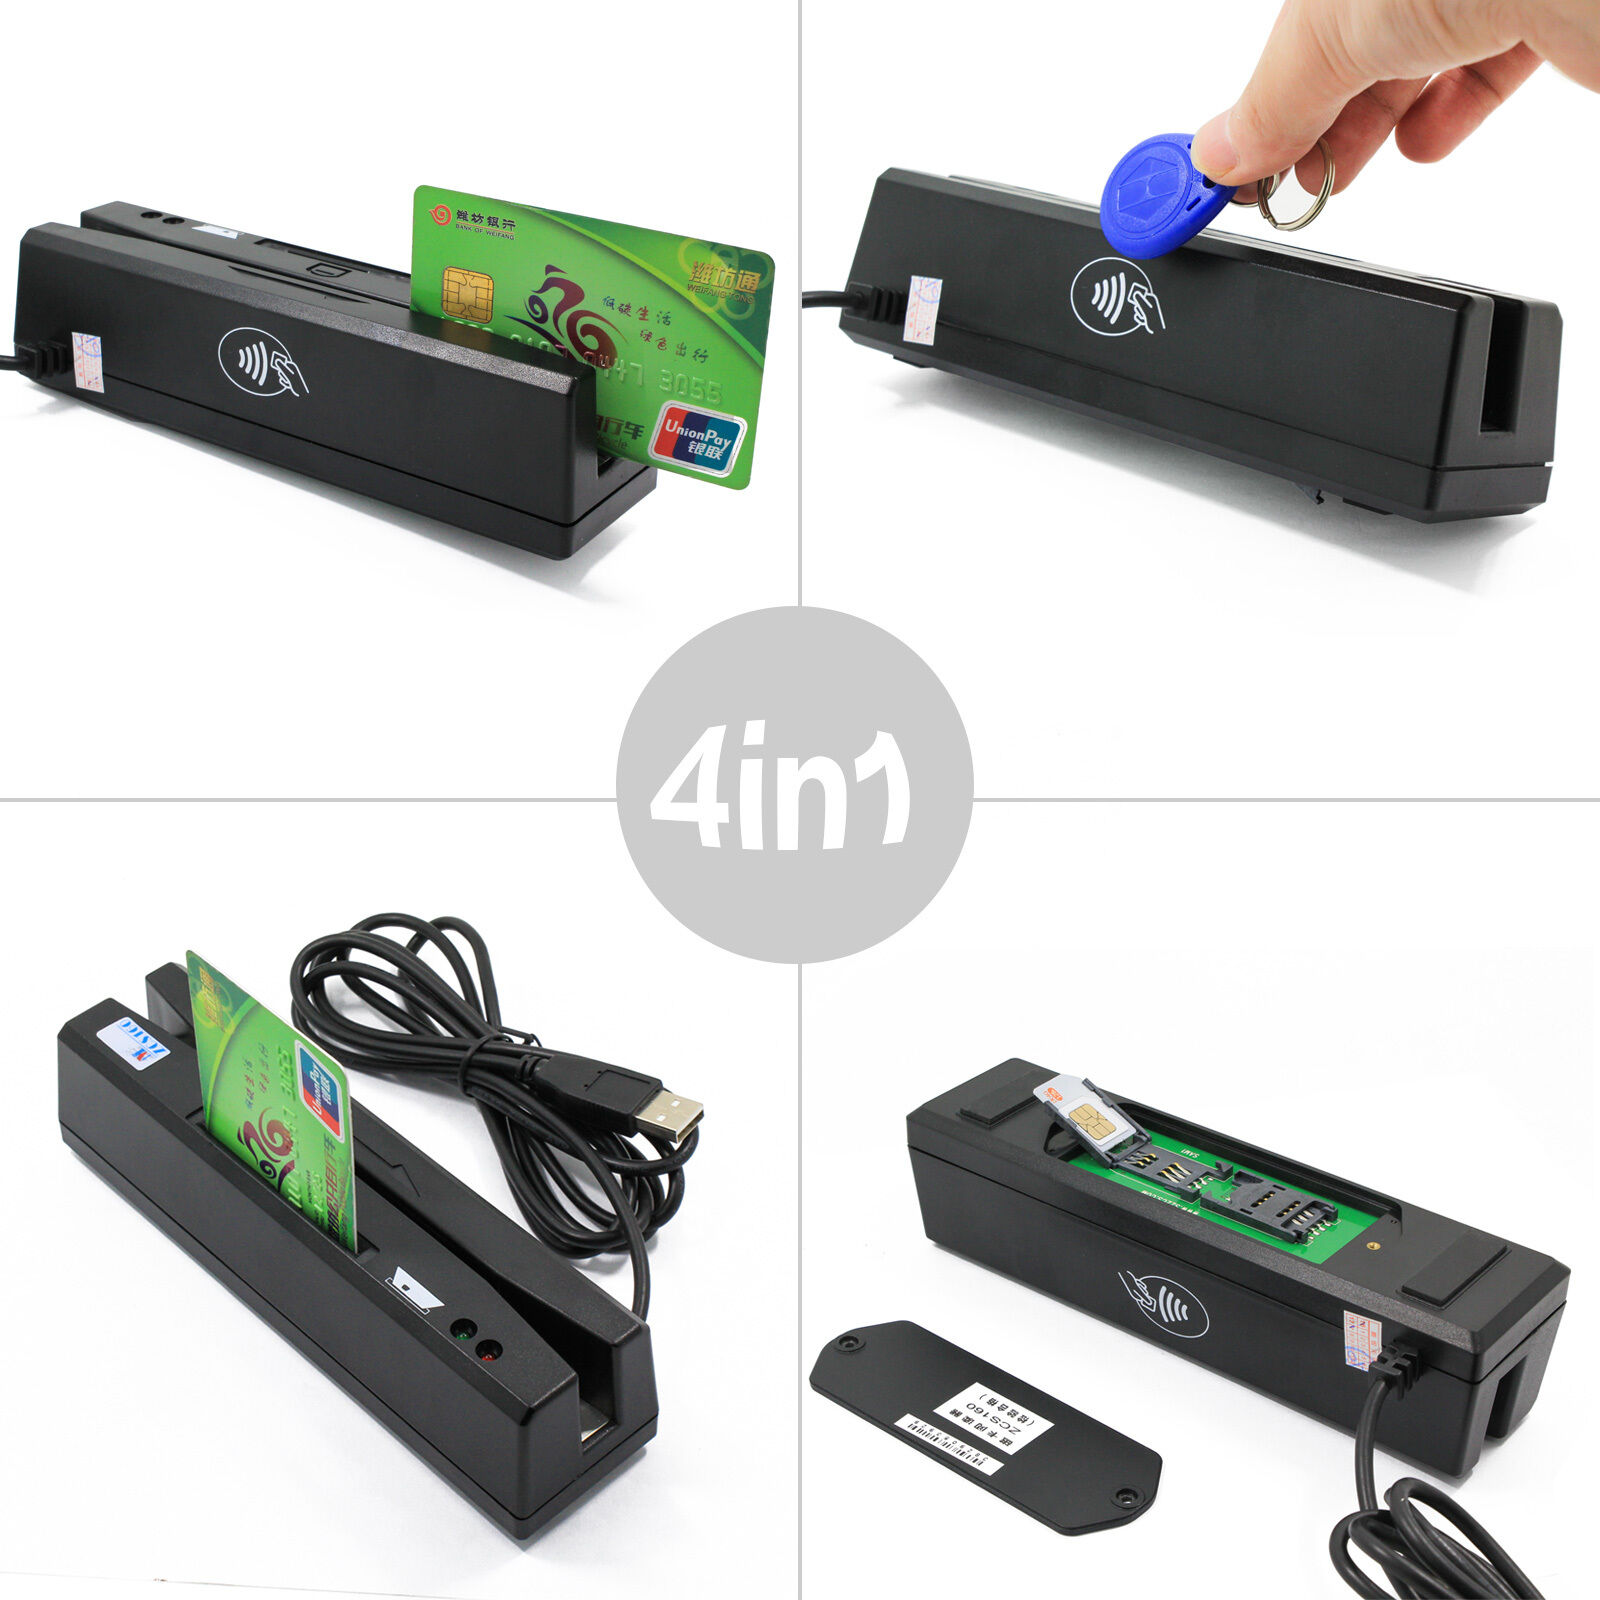 Rfid Credit Card Reader Ebay